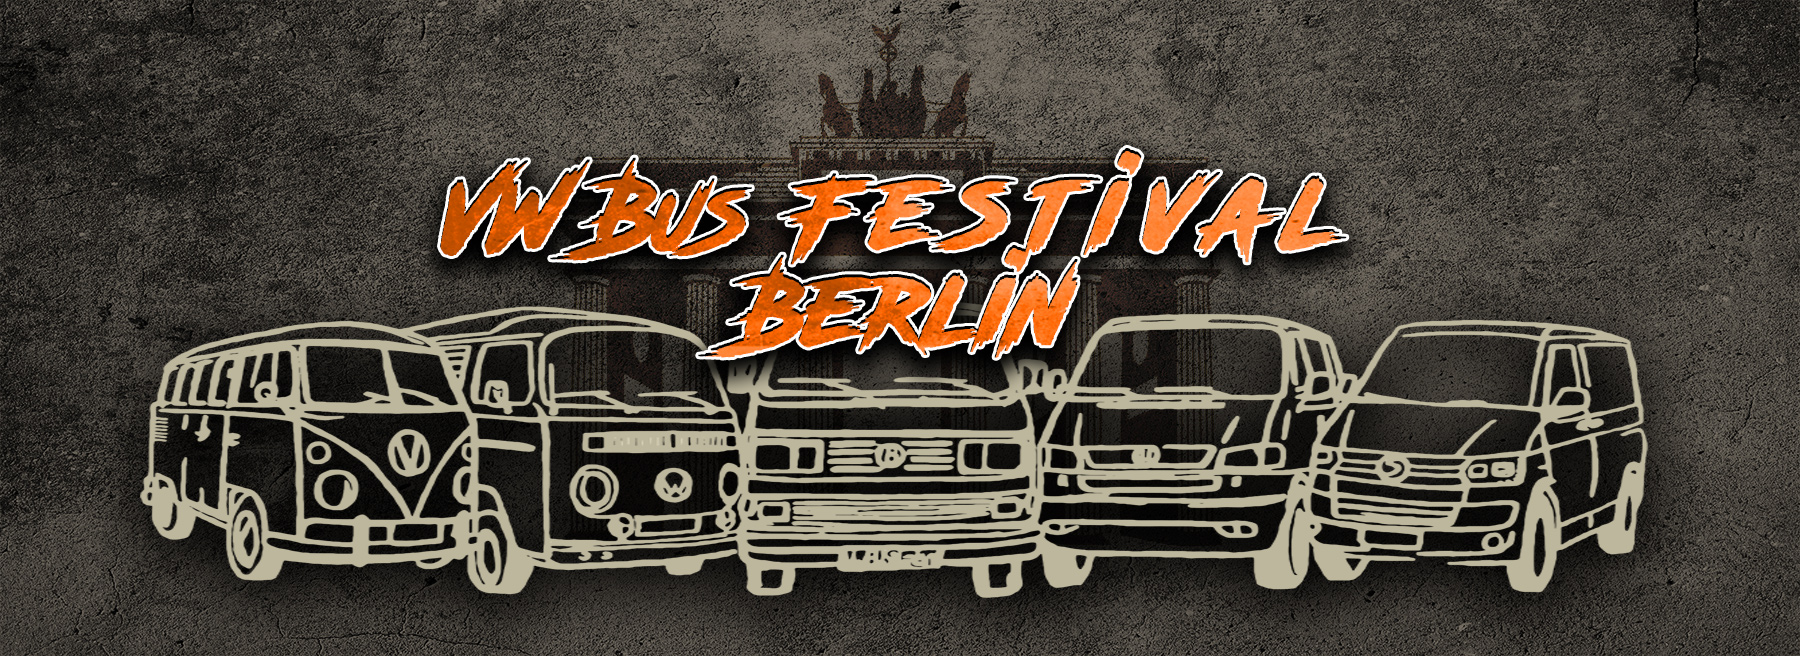 VW Bus Festival Berlin